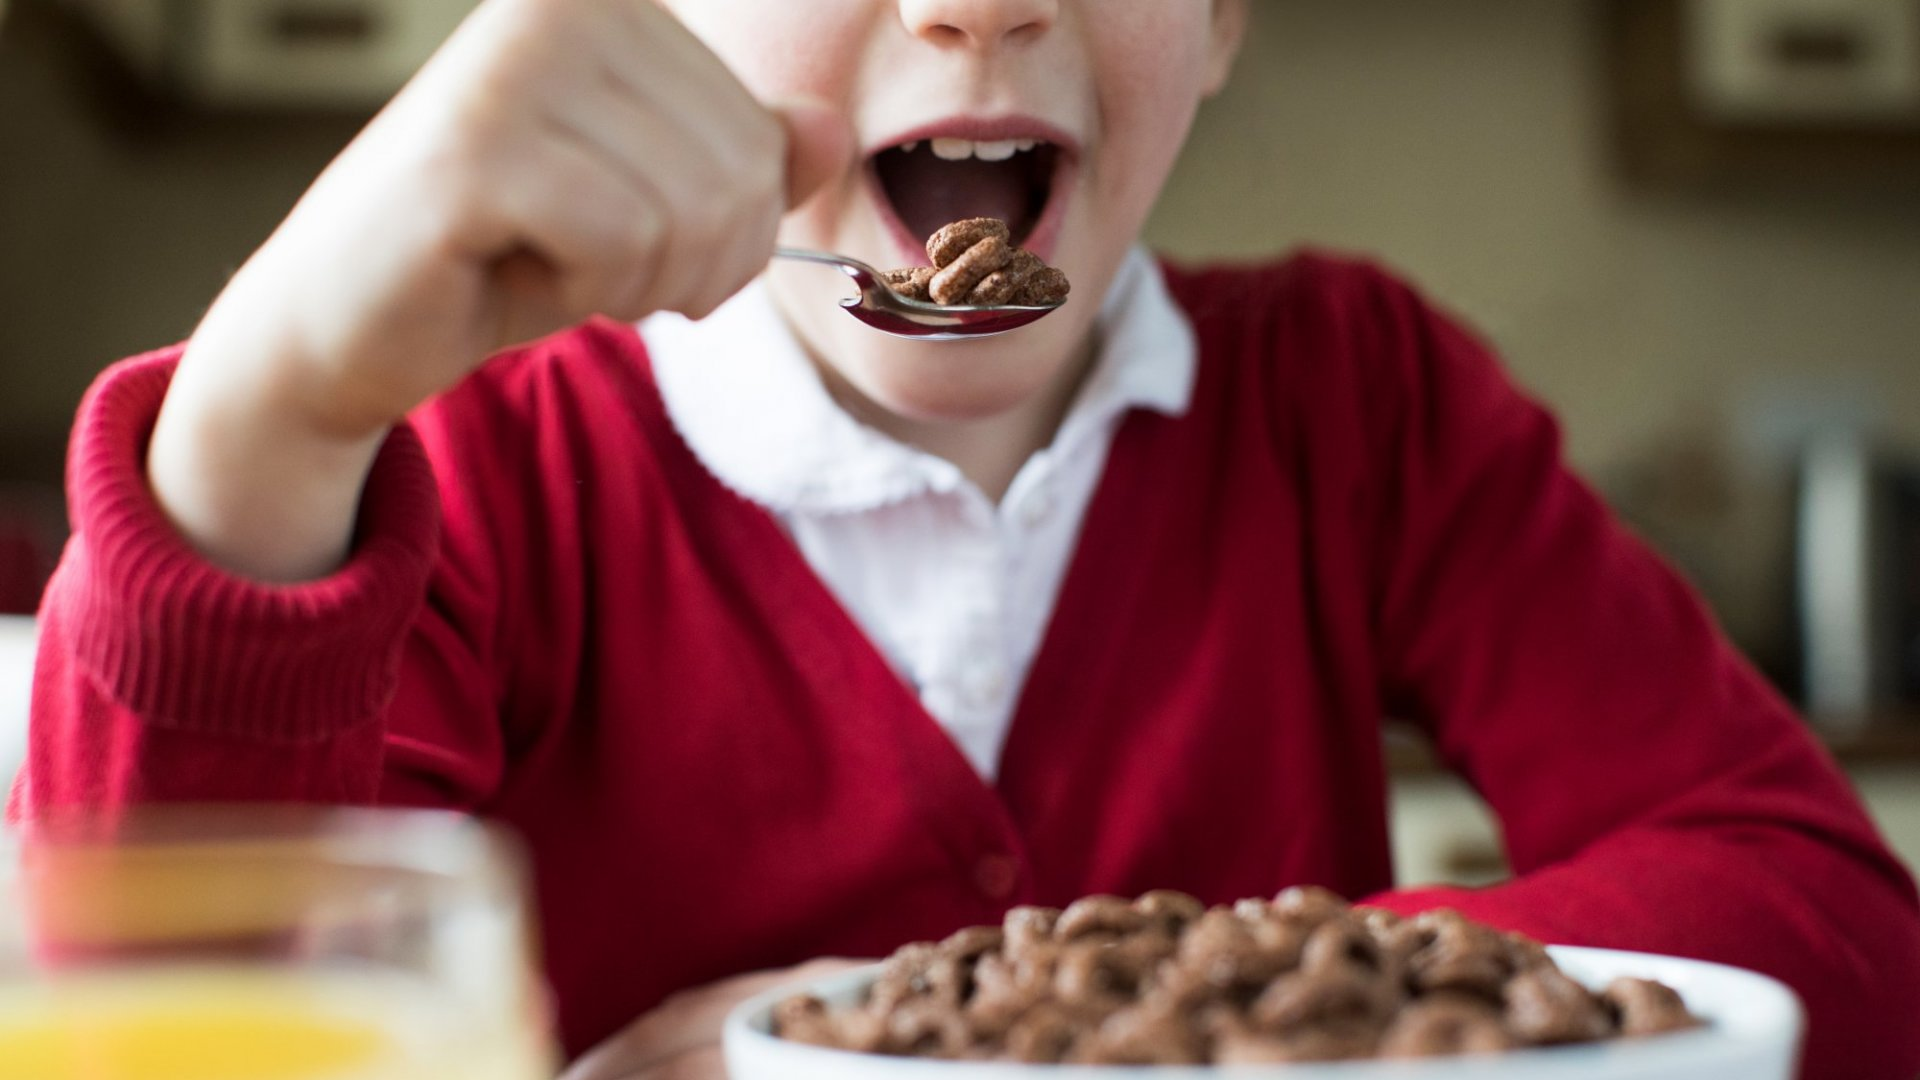 How to Raise Your Kids' IQ by 5 Points, According to Science: Make Them Eat Breakfast